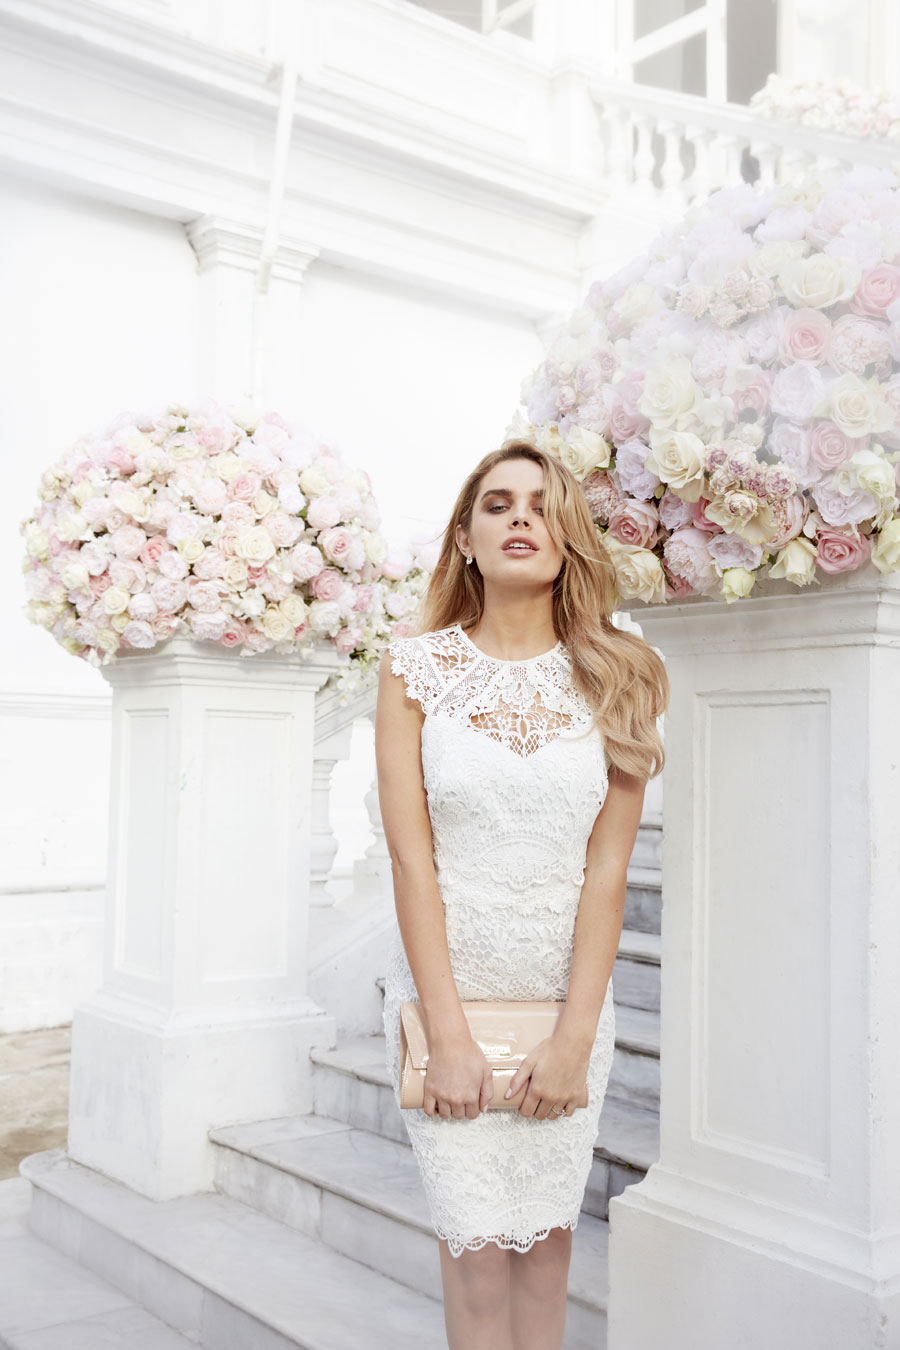 Lipsys debut brides bridesmaid collection wedding worthy and thats not all lipsyco lipsys multi branded online offering will have you saying i do to the most wedding worthy dresses and accessories ombrellifo Choice Image